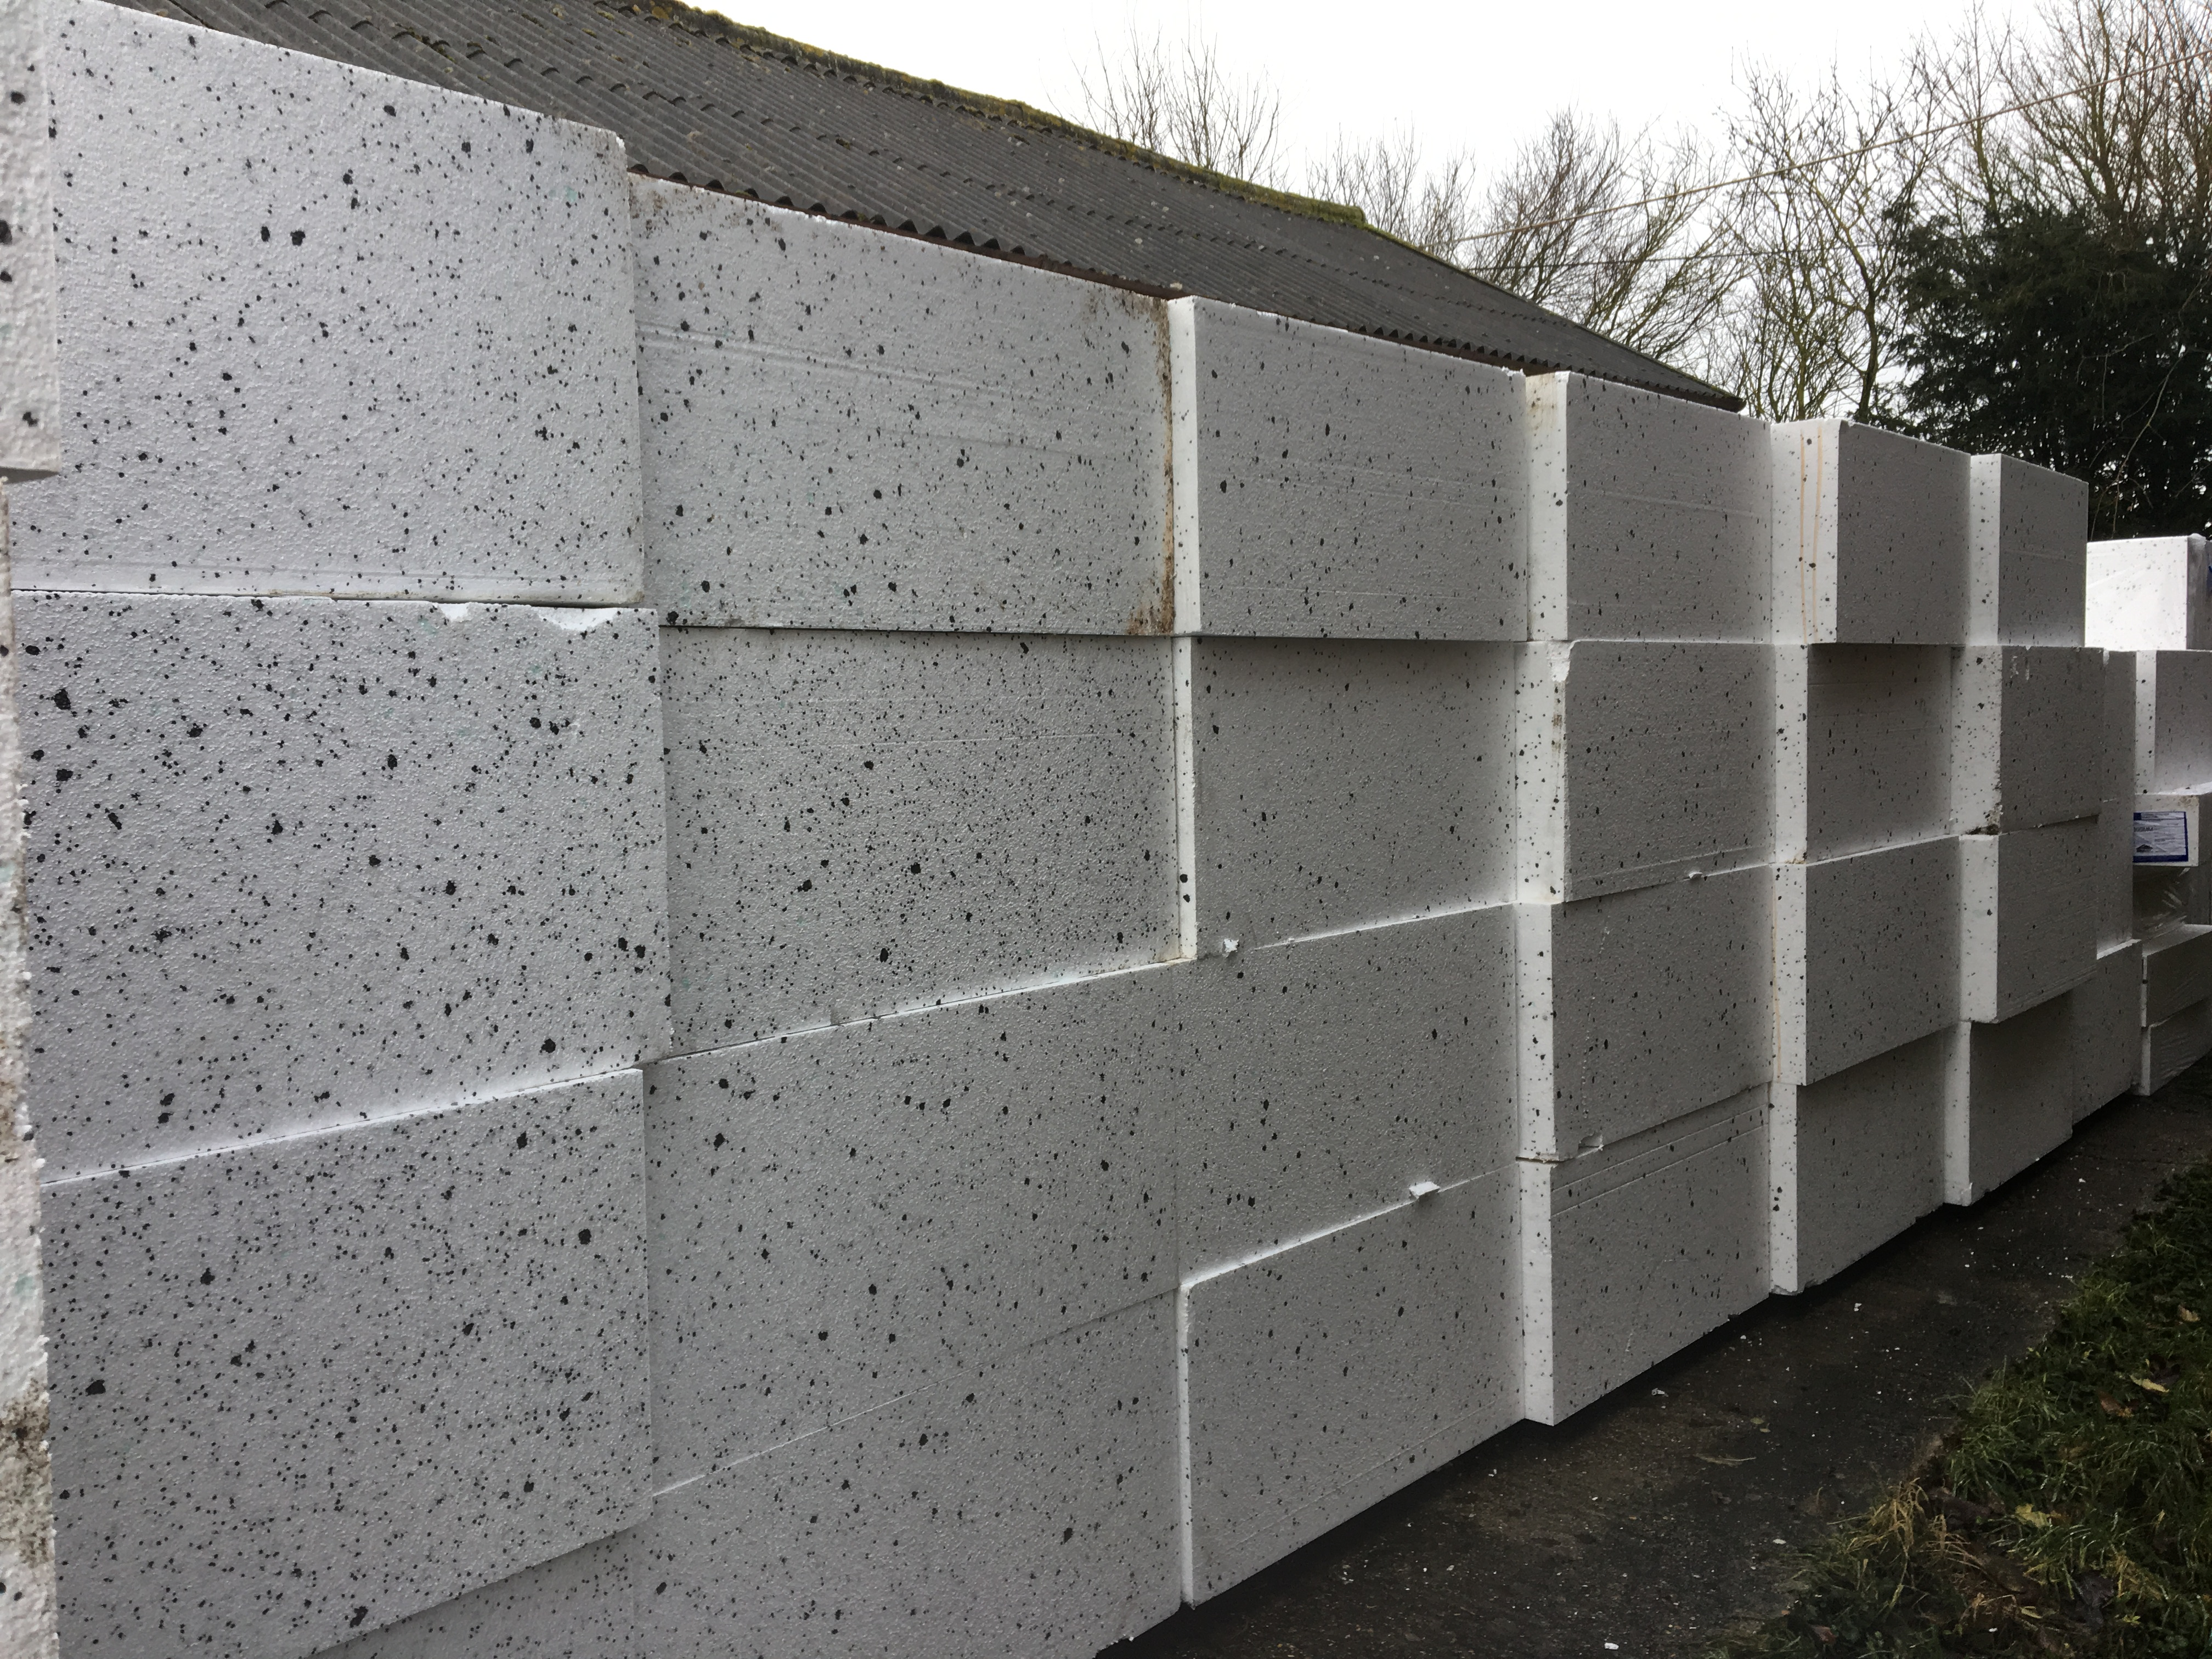 Polystyrene delivery